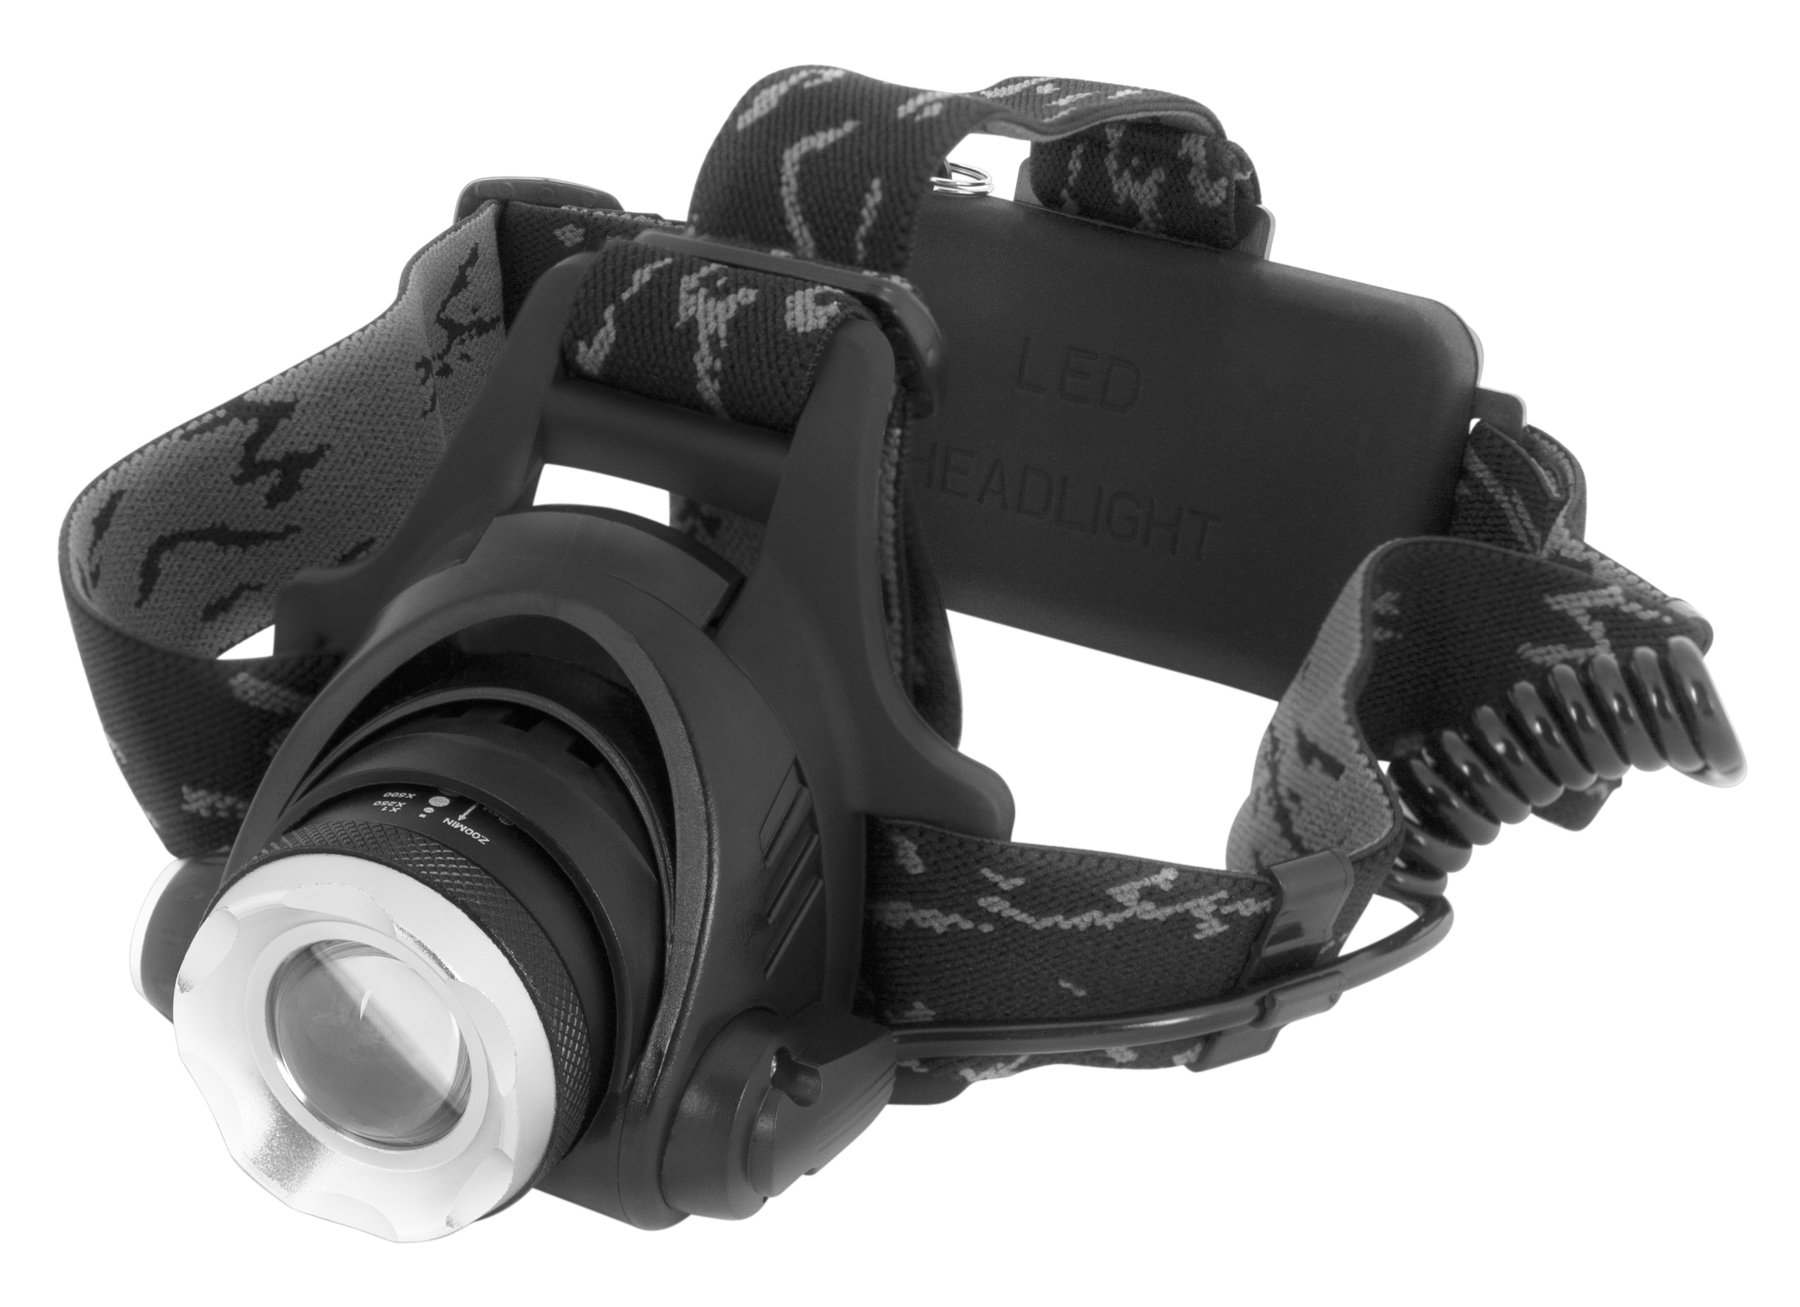 Performance Tool 560 ATAK Model Rechargeable LED 500 Lumens Pro-Focus Headlamp